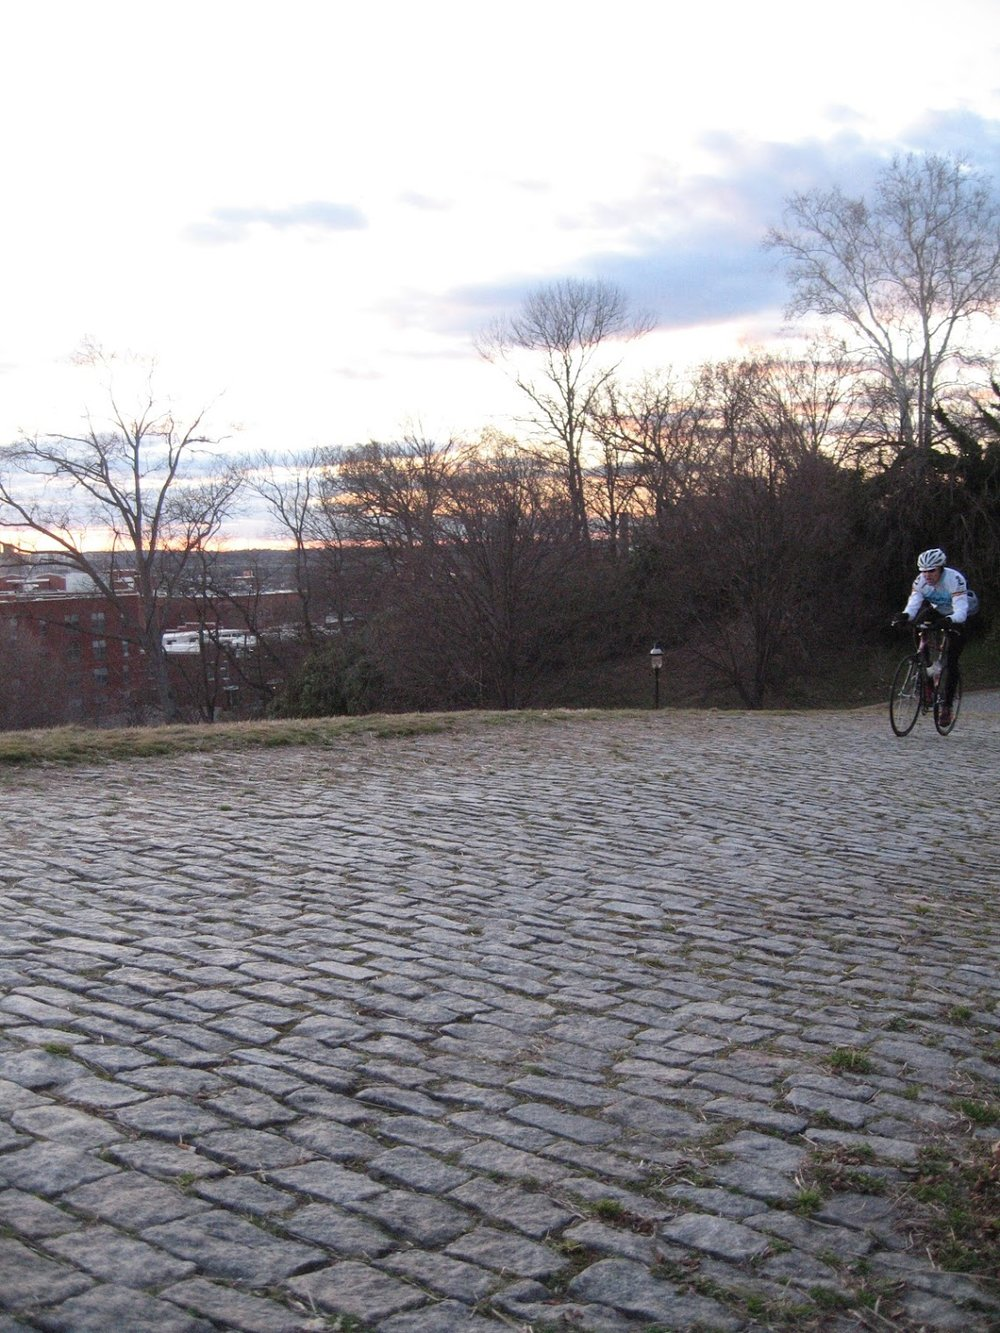 Riding up Libby Hill in Richmond, VA, as featured in the USGP and World Championship Courses